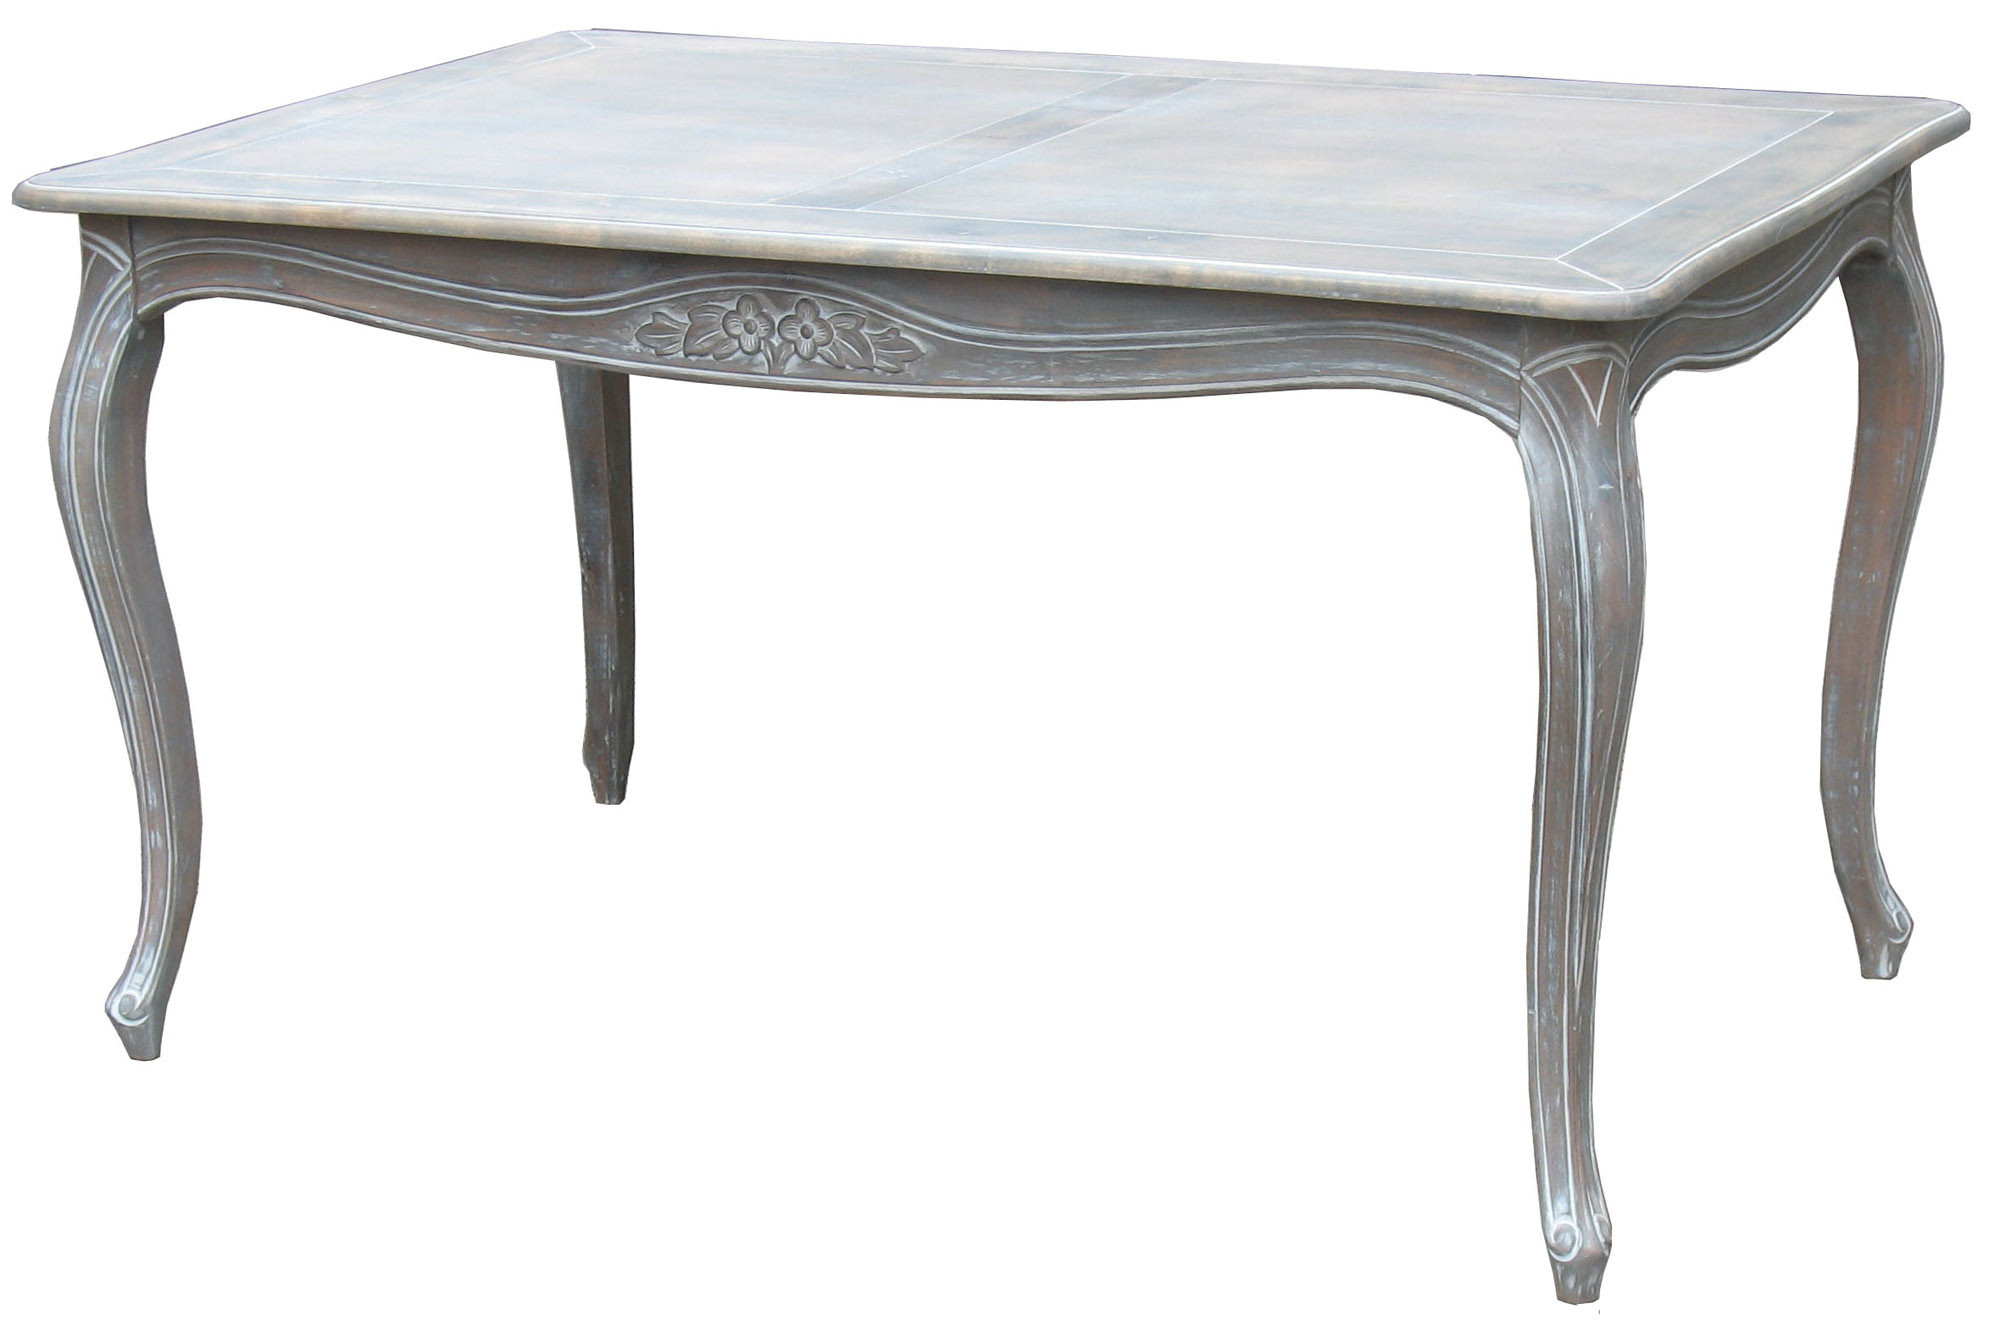 Emporium Oggetti Louis Xv Dining Table In Wash White Temple Webster